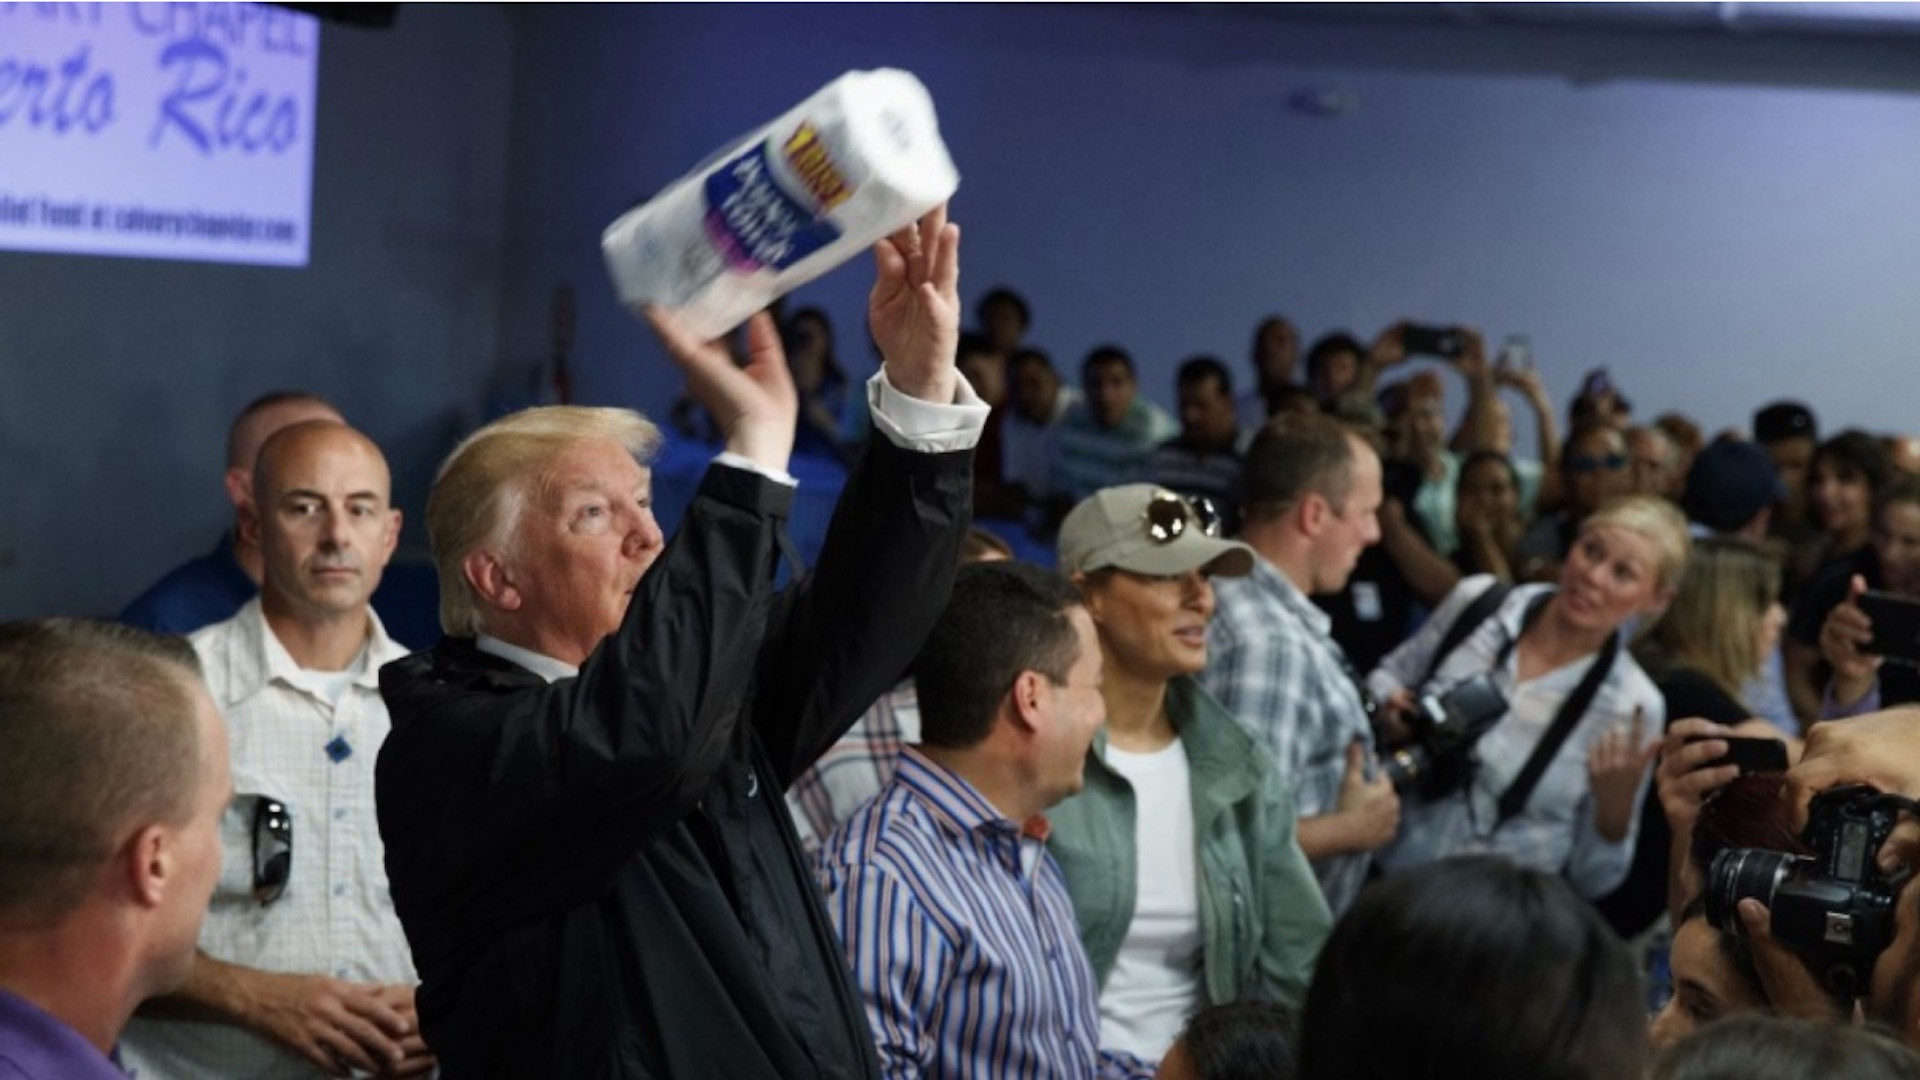 'It totally belittled the moment': Many look back in dismay at Trump's tossing of paper towels in Puerto Rico